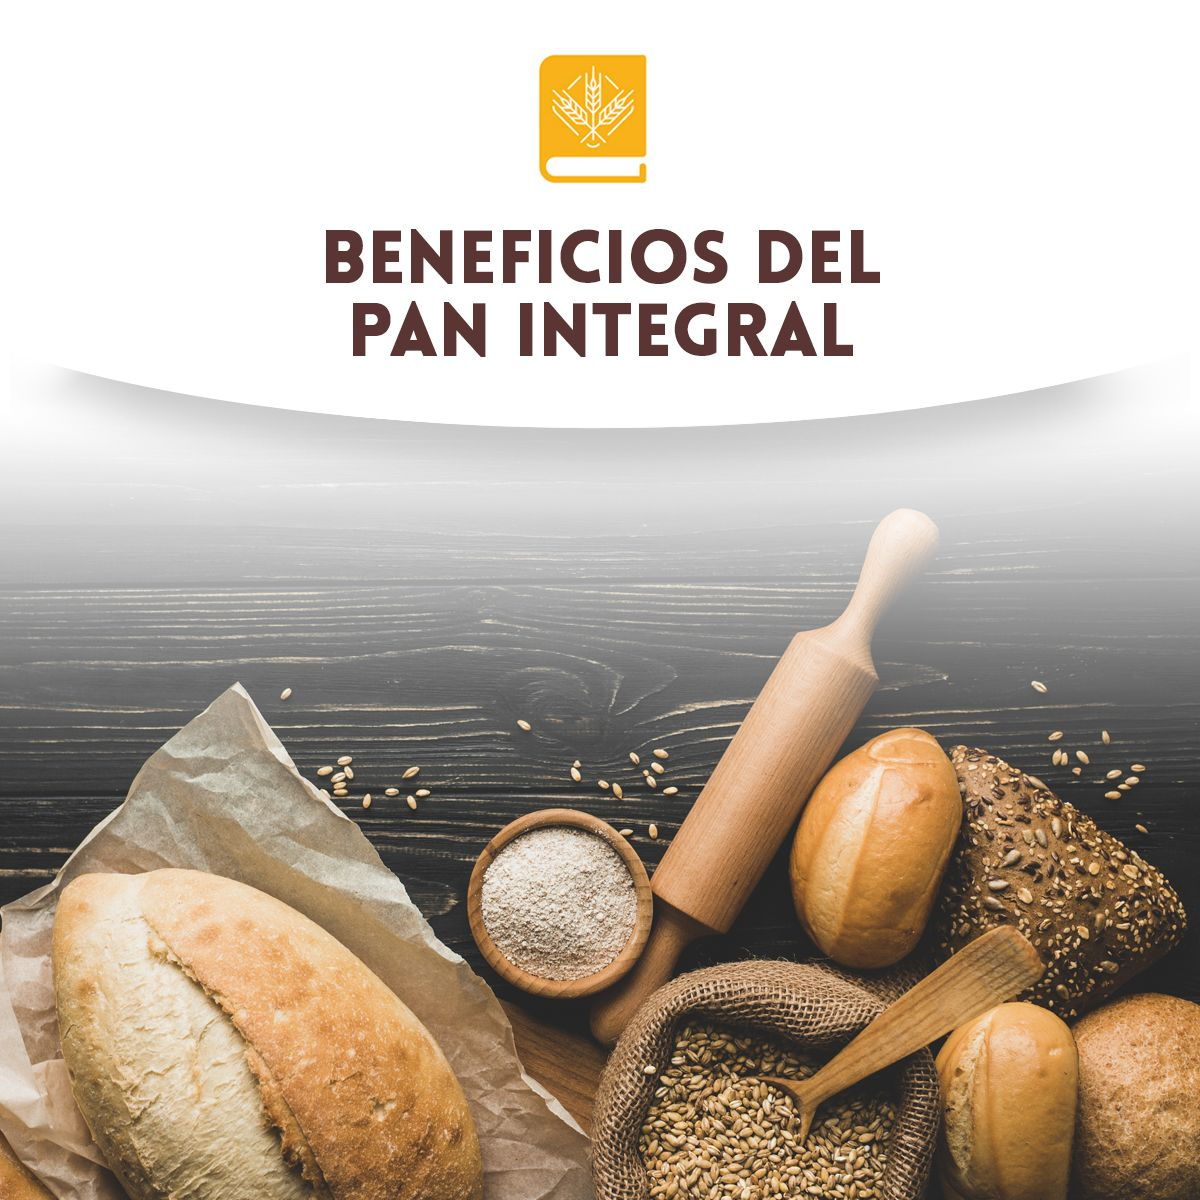 Beneficios del pan integral